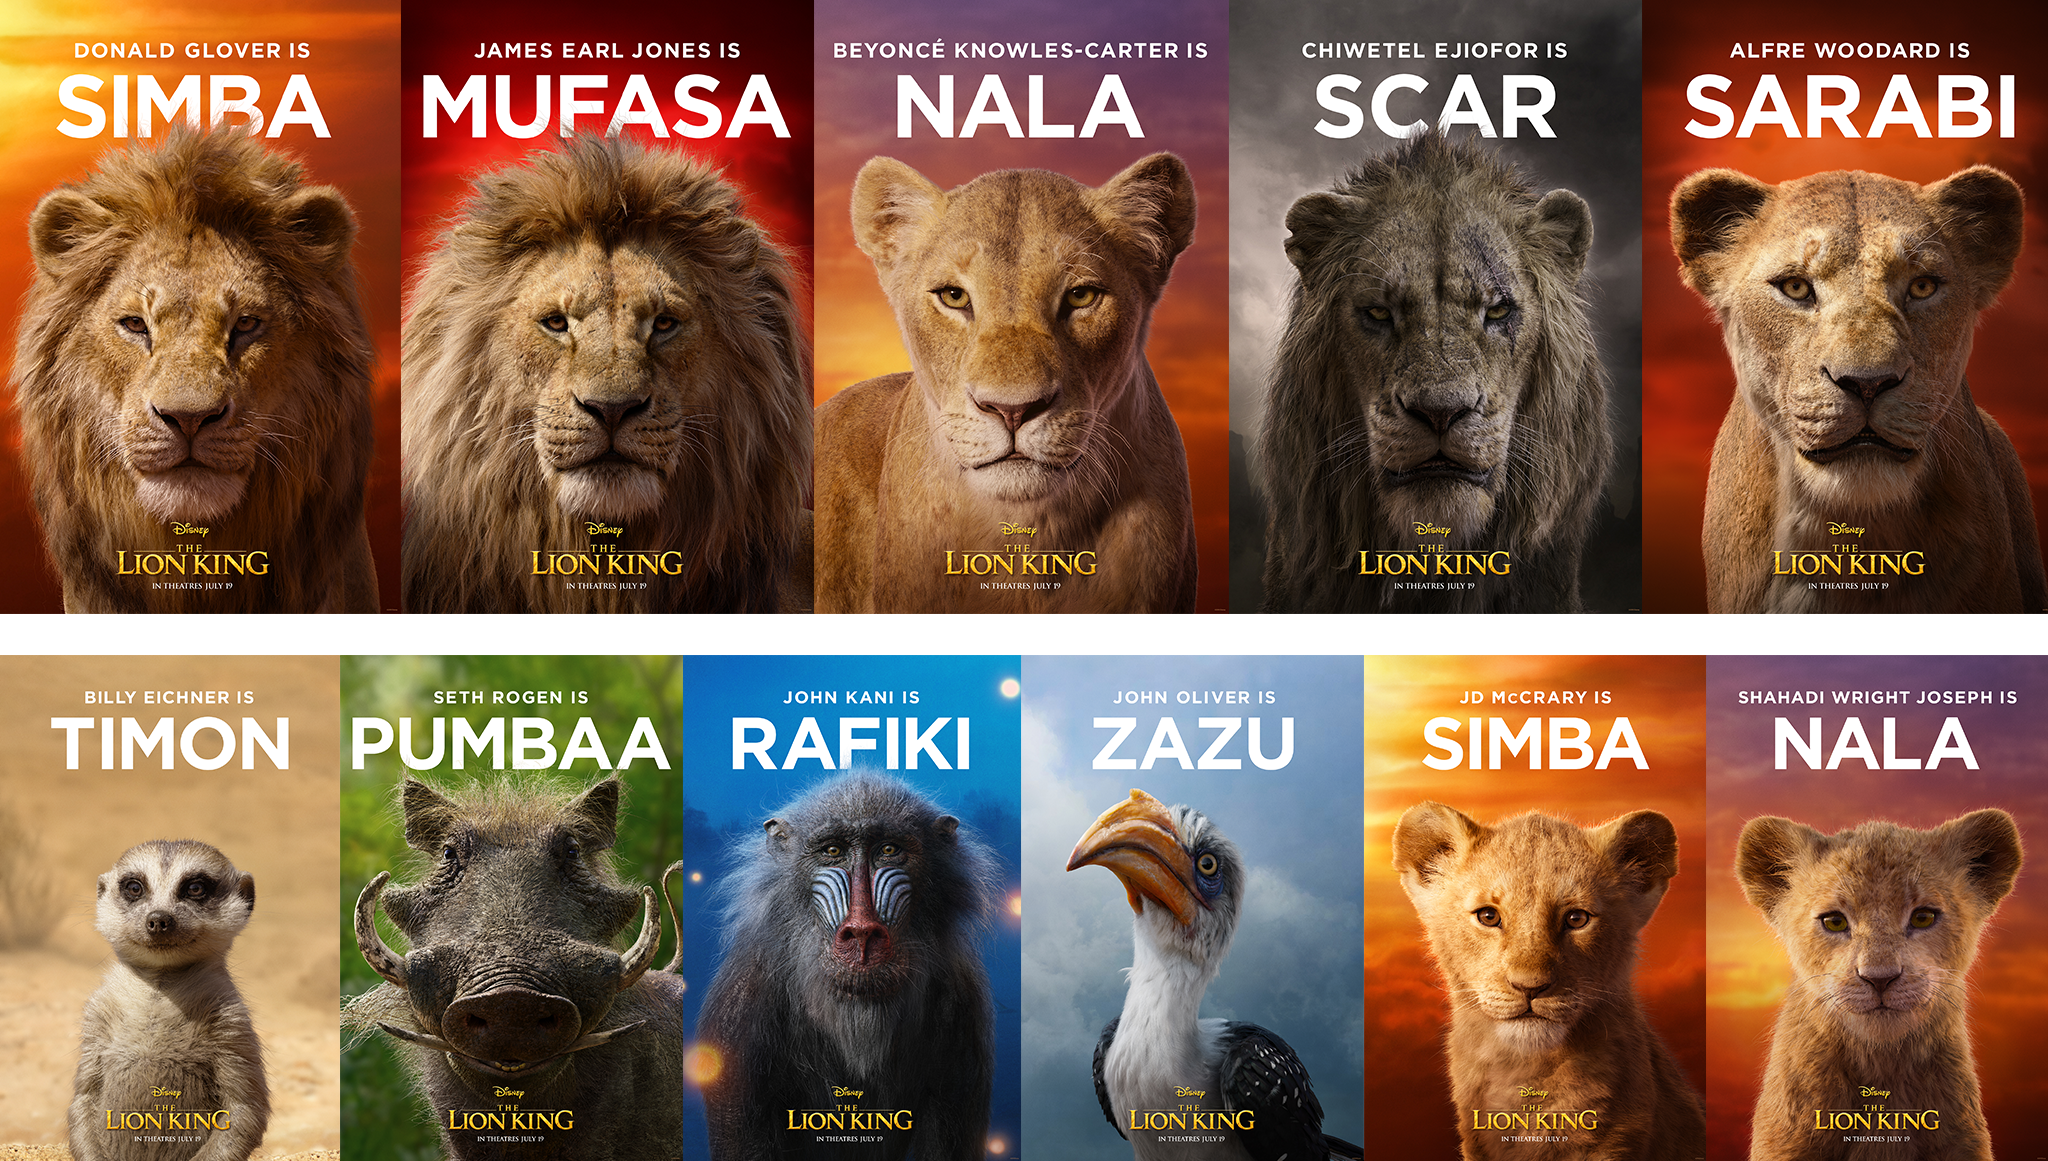 The Lion King 2019 Disney Movies Lion King Poster Lion King Movie Lion King Pictures